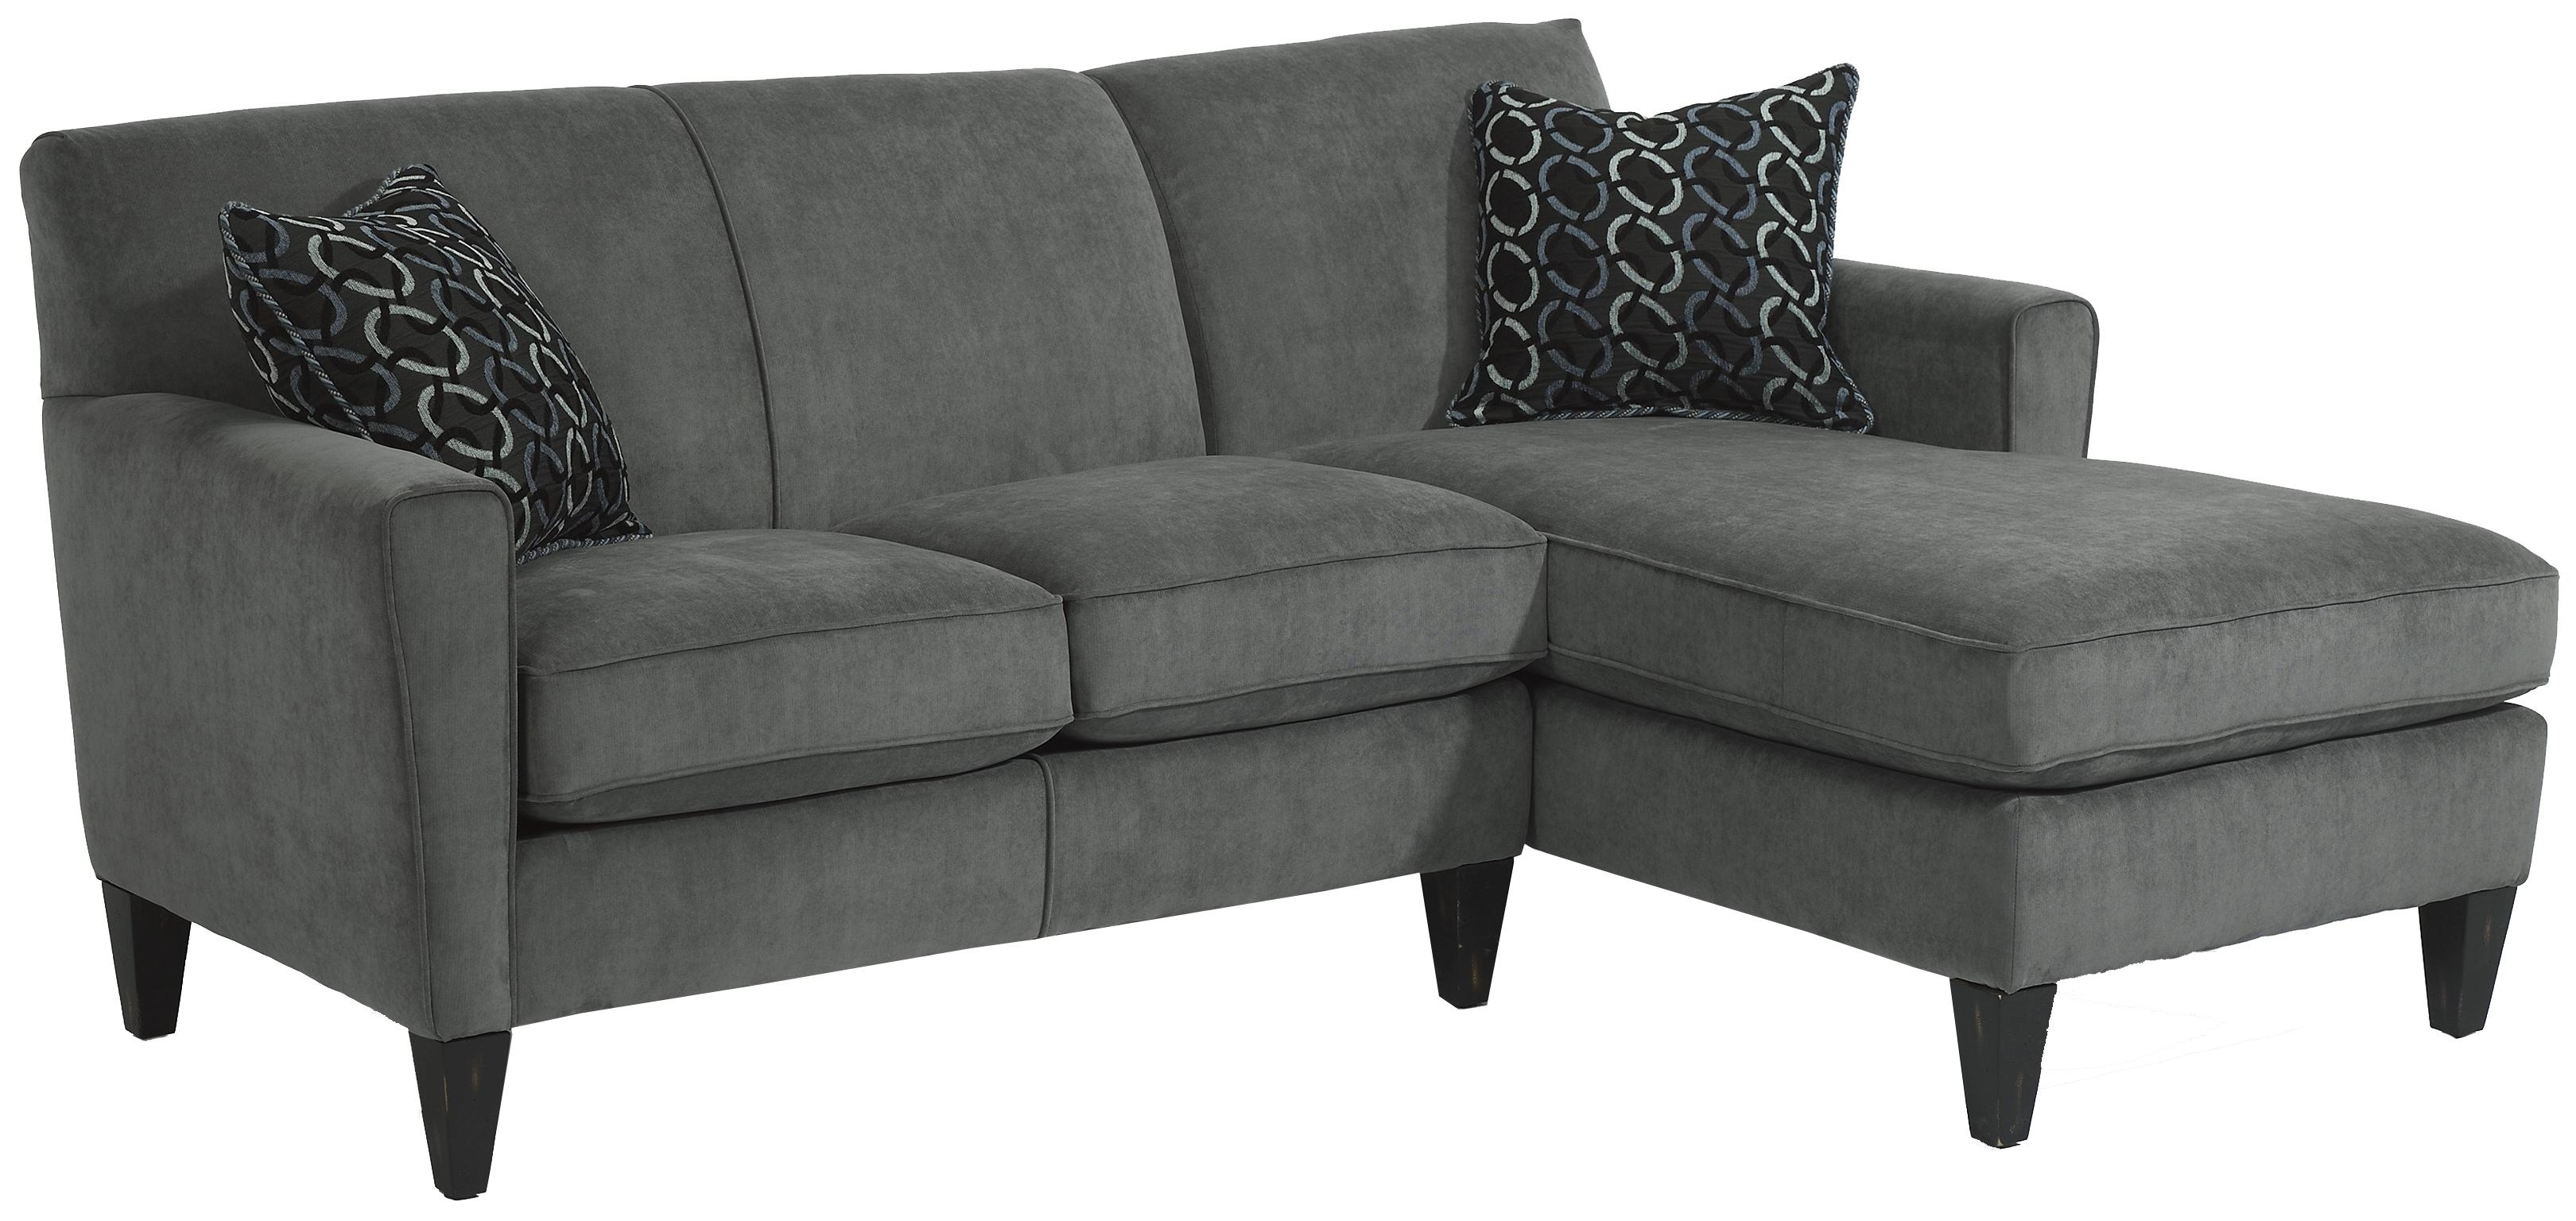 Flexsteel Digby Contemporary Sectional Sofa With Raf Chaise – Ahfa Inside Meyer 3 Piece Sectionals With Laf Chaise (Image 8 of 25)